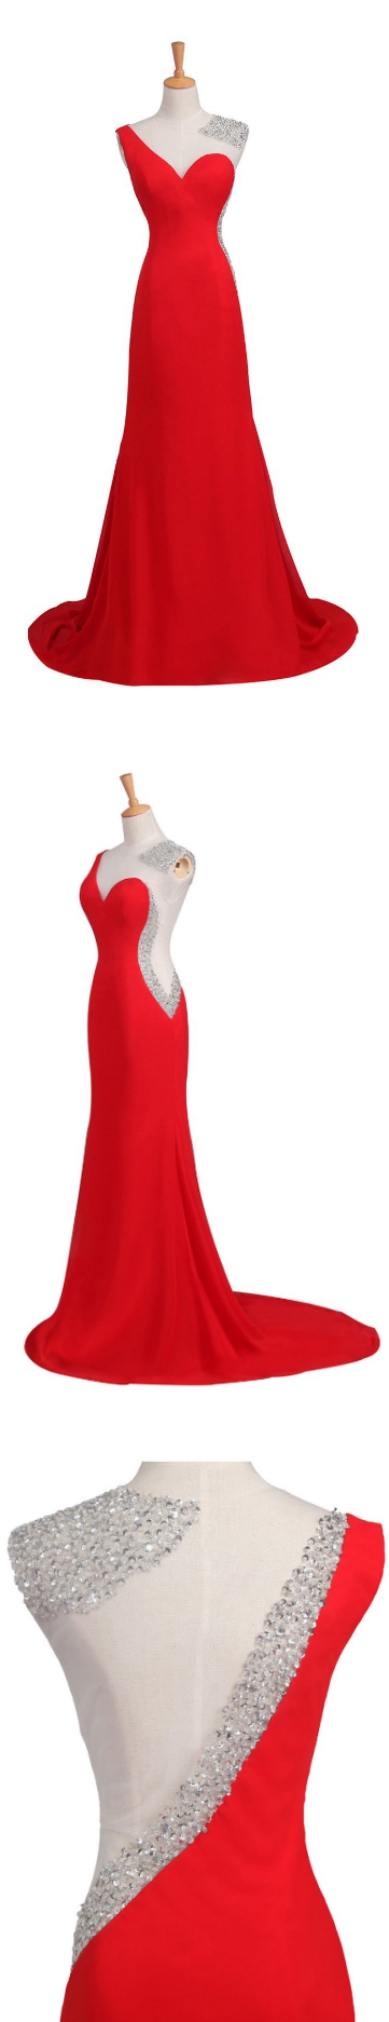 Mermaid prom dresses red prom dresses long prom dresses with